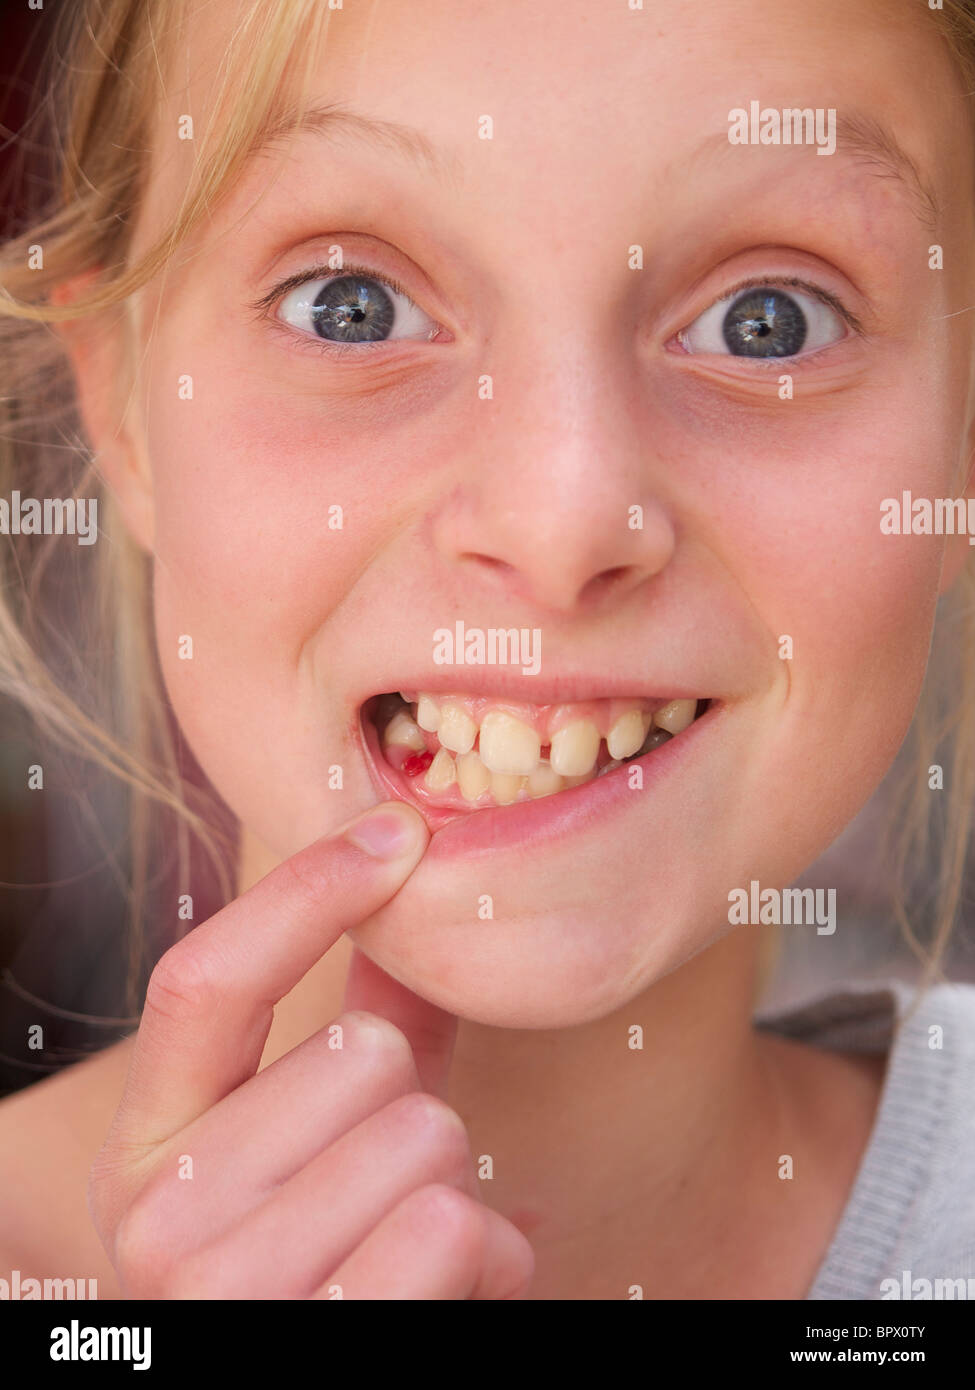 Girl showing her missing molar 10 years old exchanging teeth fun funny Her name is Lara - Stock Image